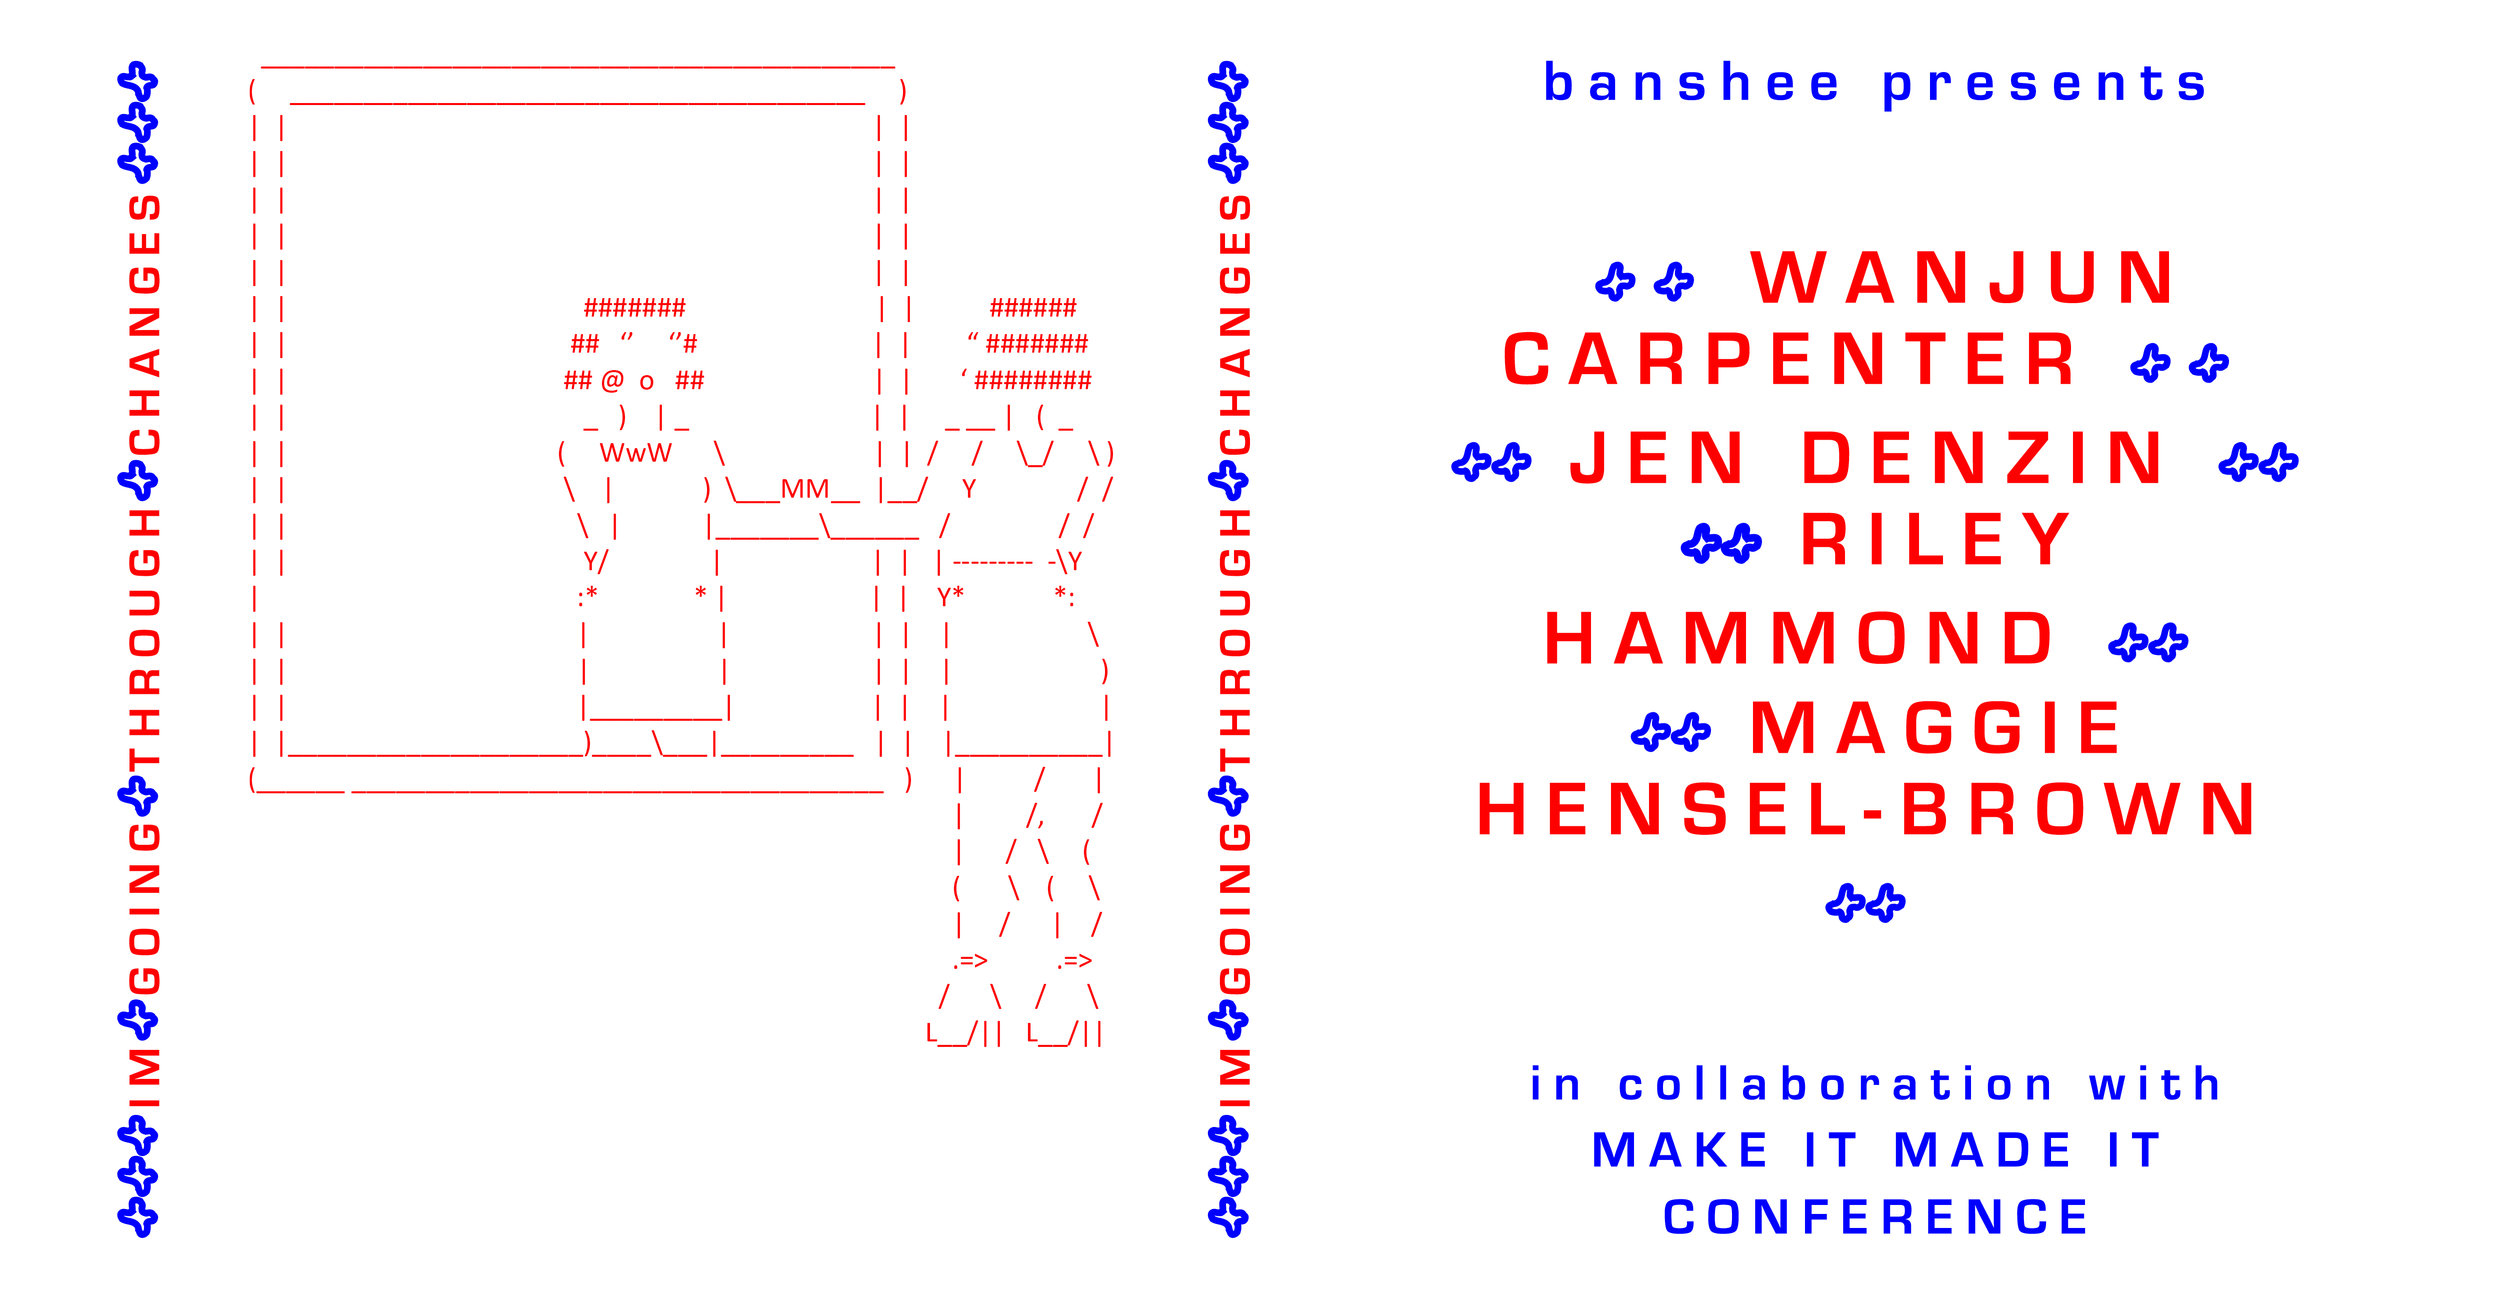 BANSHEE presents...  +++IM GOING THROUGH CHANGES+++  ...an exhibition featuring Newcastle based artists Wanjun Carpenter, Jen Denzin, Riley Hammond and Maggie Hensel-Brown exploring ideas around change.   Exhibition Opening: 6pm - 9pm, Friday 12th July 2019   This exhibition has been created in collaboration with  Banshee Collective  and  Onwards Studio  for the  MAKEit MADEit Conference  in Newcastle, NSW.  ---  Back for its fifth year, MAKE IT MADE IT Conference returns in support for the arts, making and design communities of Newcastle and Australia. Creative professionals travel from across the country and abroad to unite in sharing their direction, experience and passion for their craft.  Every year, MAKE IT - MADE IT Conference delivers a unique and enjoyable experience surrounding the conference and shares new ways for our community to meet their peers and guest speakers through exhibitions, events, and cultural gatherings.  ---  Thanks to  MAKEit MADEit Conference , Onwards Studio and  Young Henrys   ---  Cover image artwork: Riley Hammond ' :- ) ' 2019 Cover image design: Holly Farrell